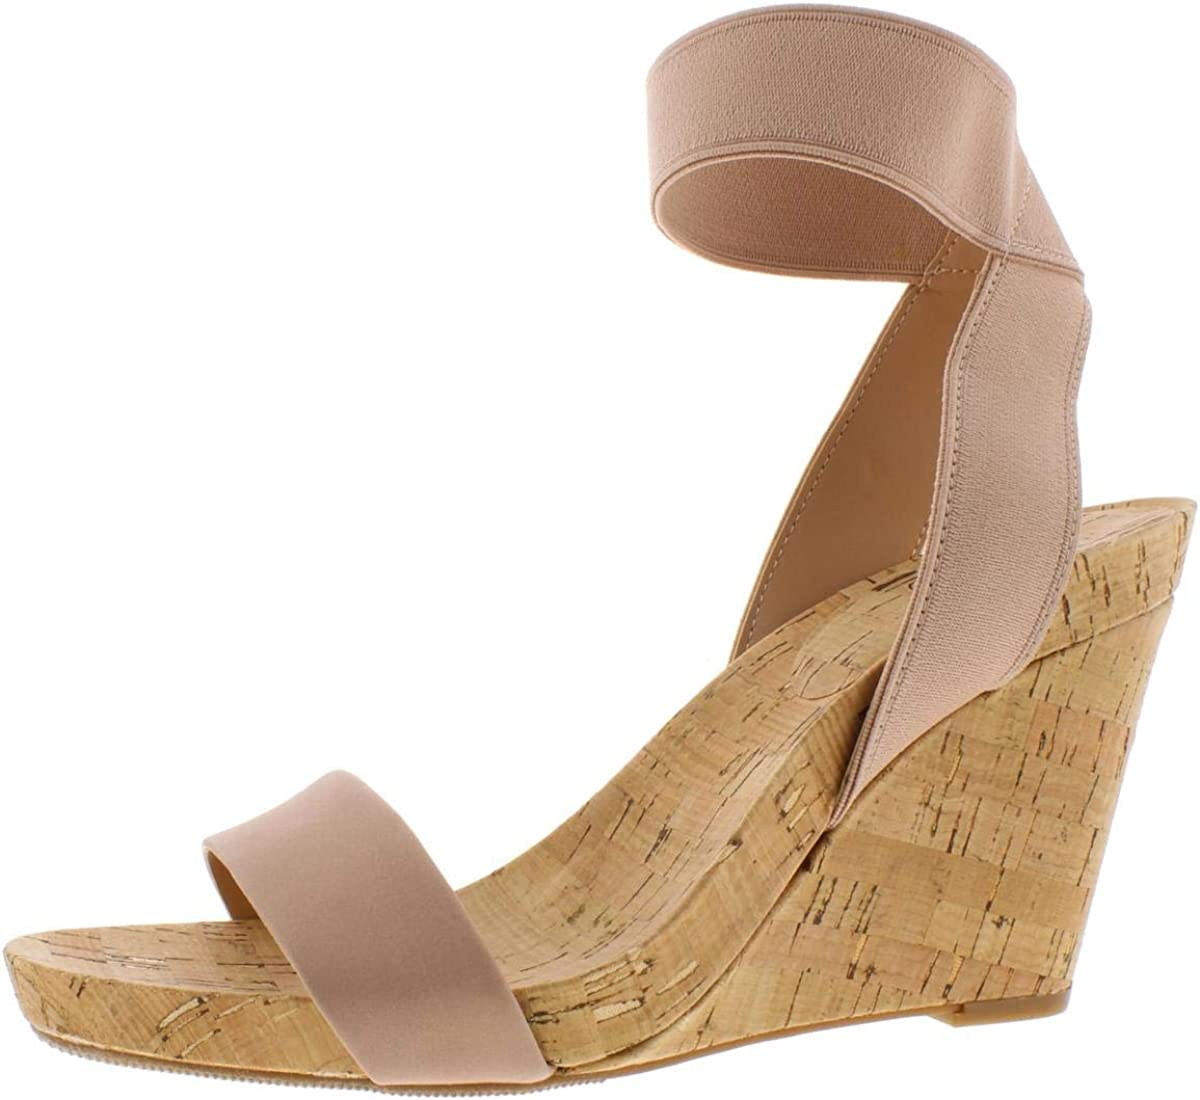 INC International Concepts Womens Leanira Leather Open Toe Casual Ankle Strap...